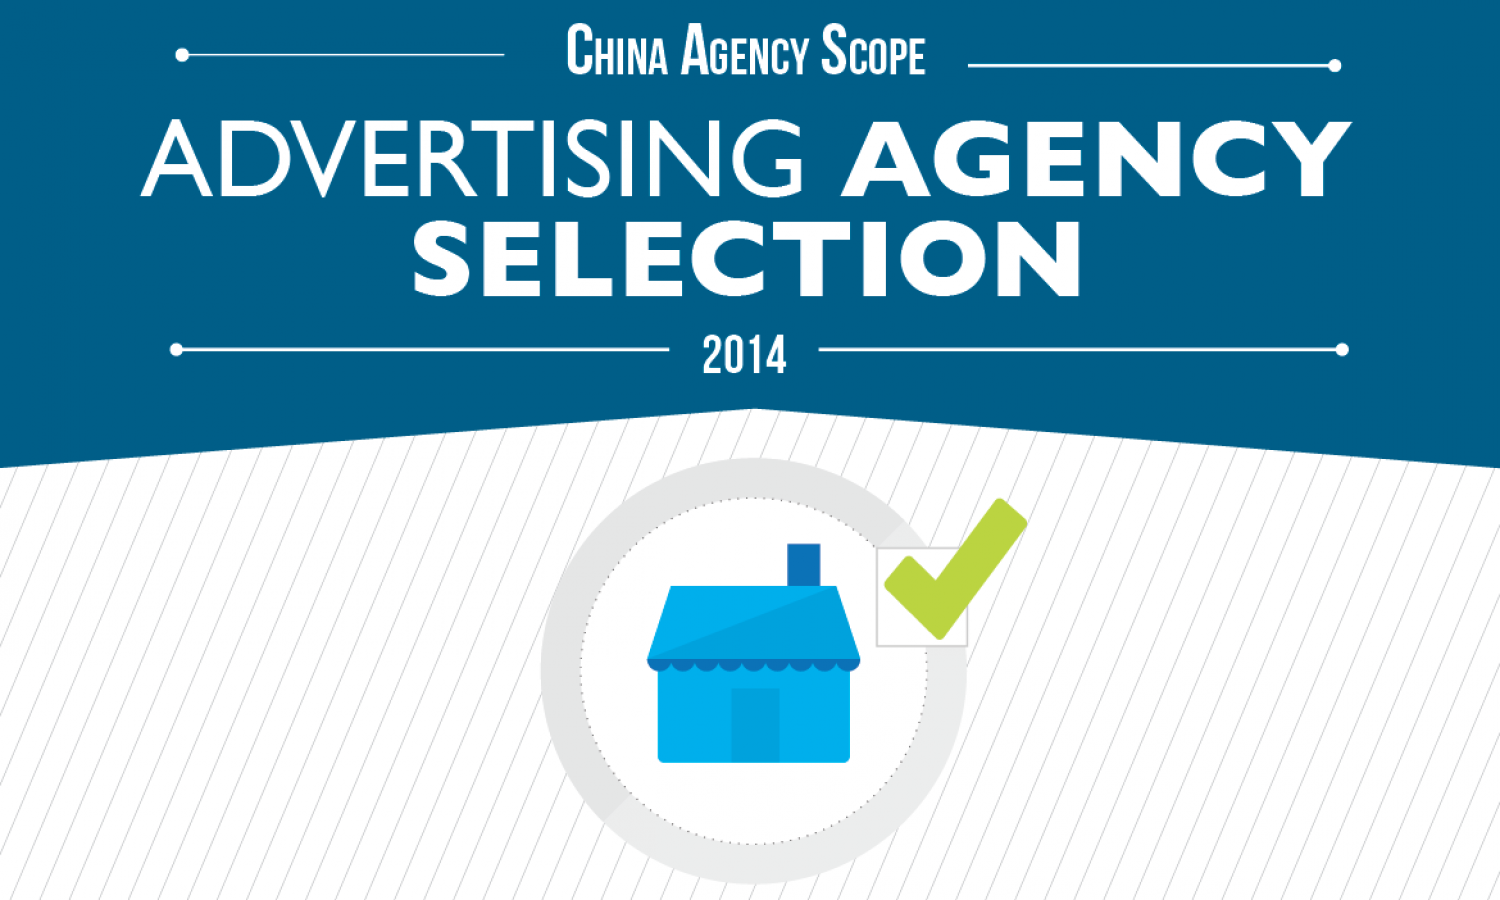 Advertising Agency Selection in China Infographic